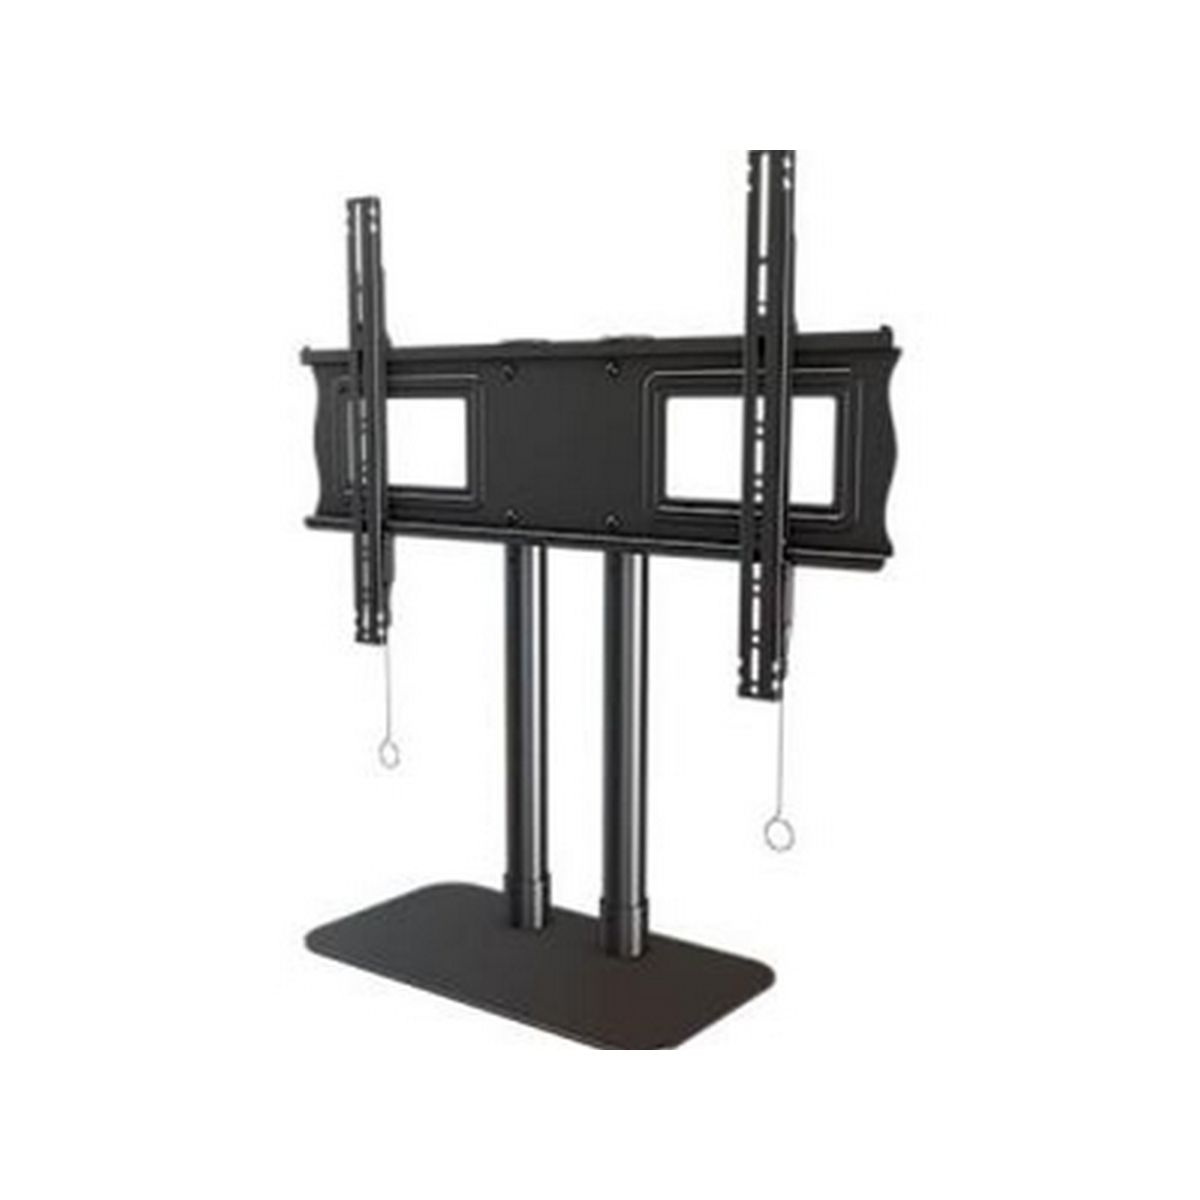 Crimson DS84 Single monitor desktop stand for extra large displays 32